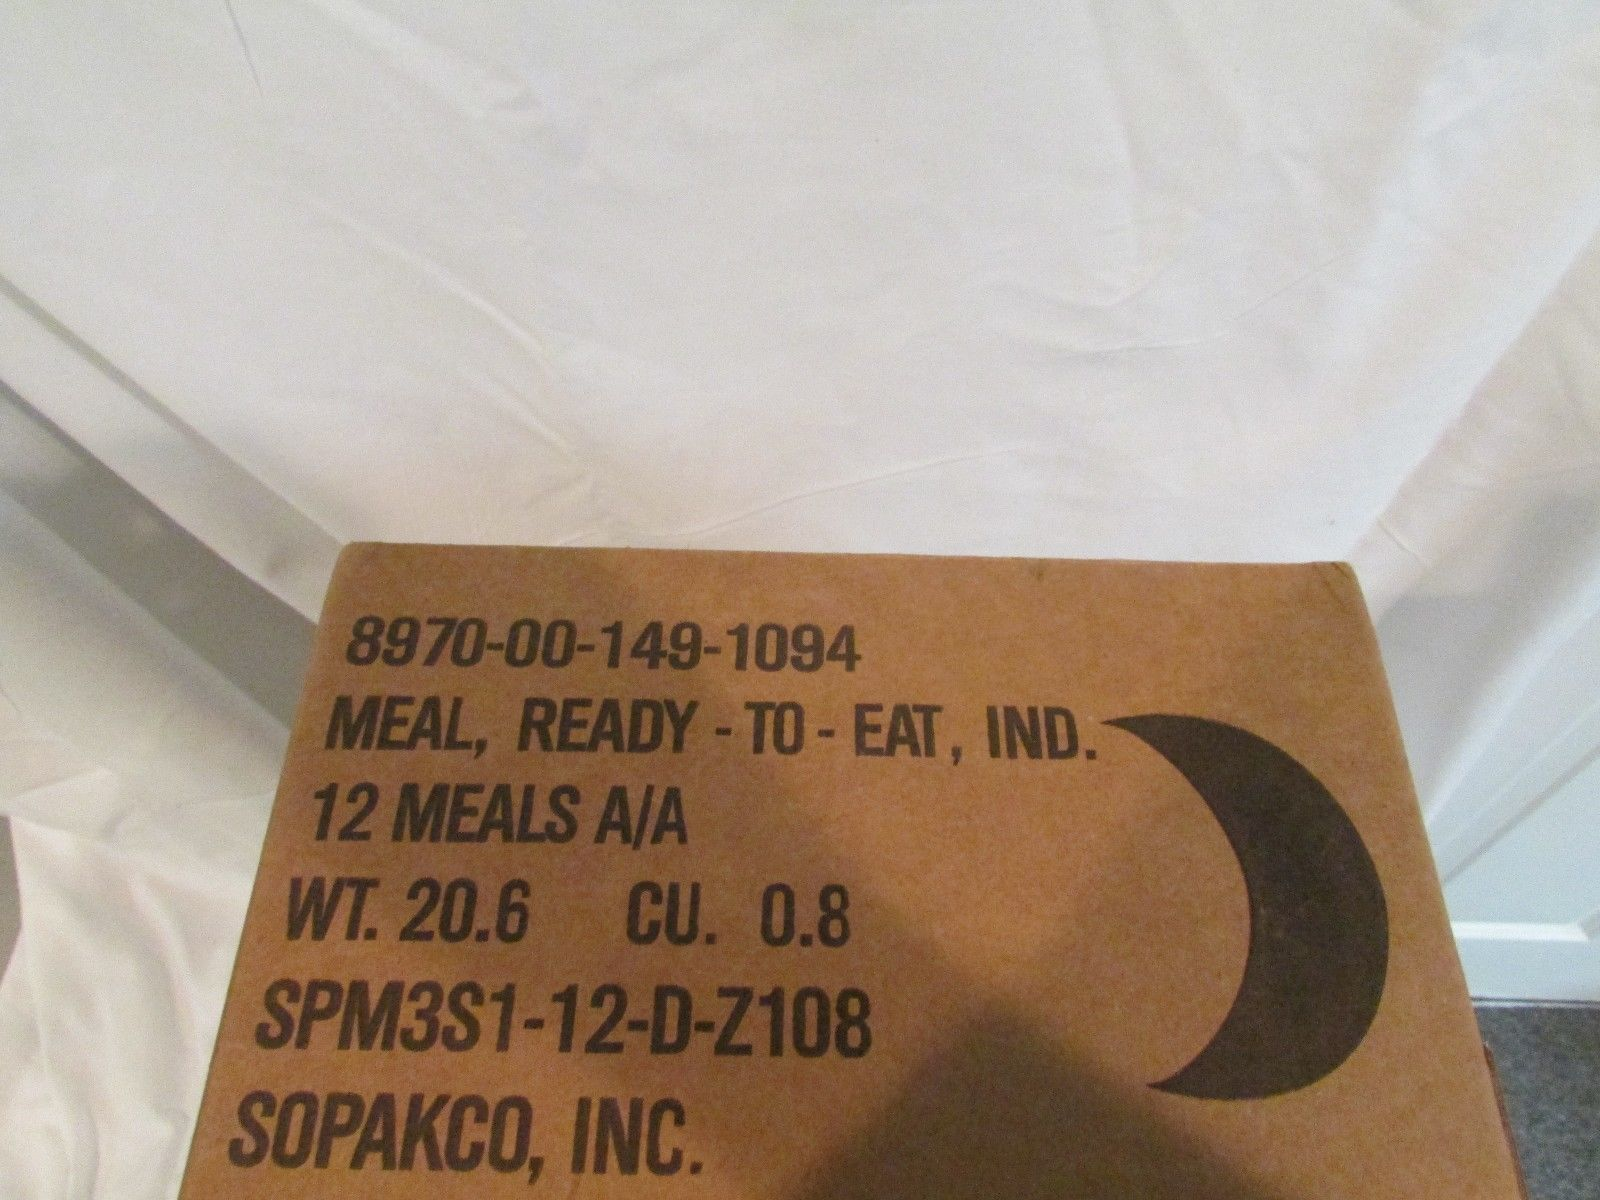 MREs and Freeze-Dried Food 62118: Mre Case Of 12 Meals Ready To Eat Case A Sealed Test Date 2018 Genuine Mil Spec -> BUY IT NOW ONLY: $75.99 on eBay!